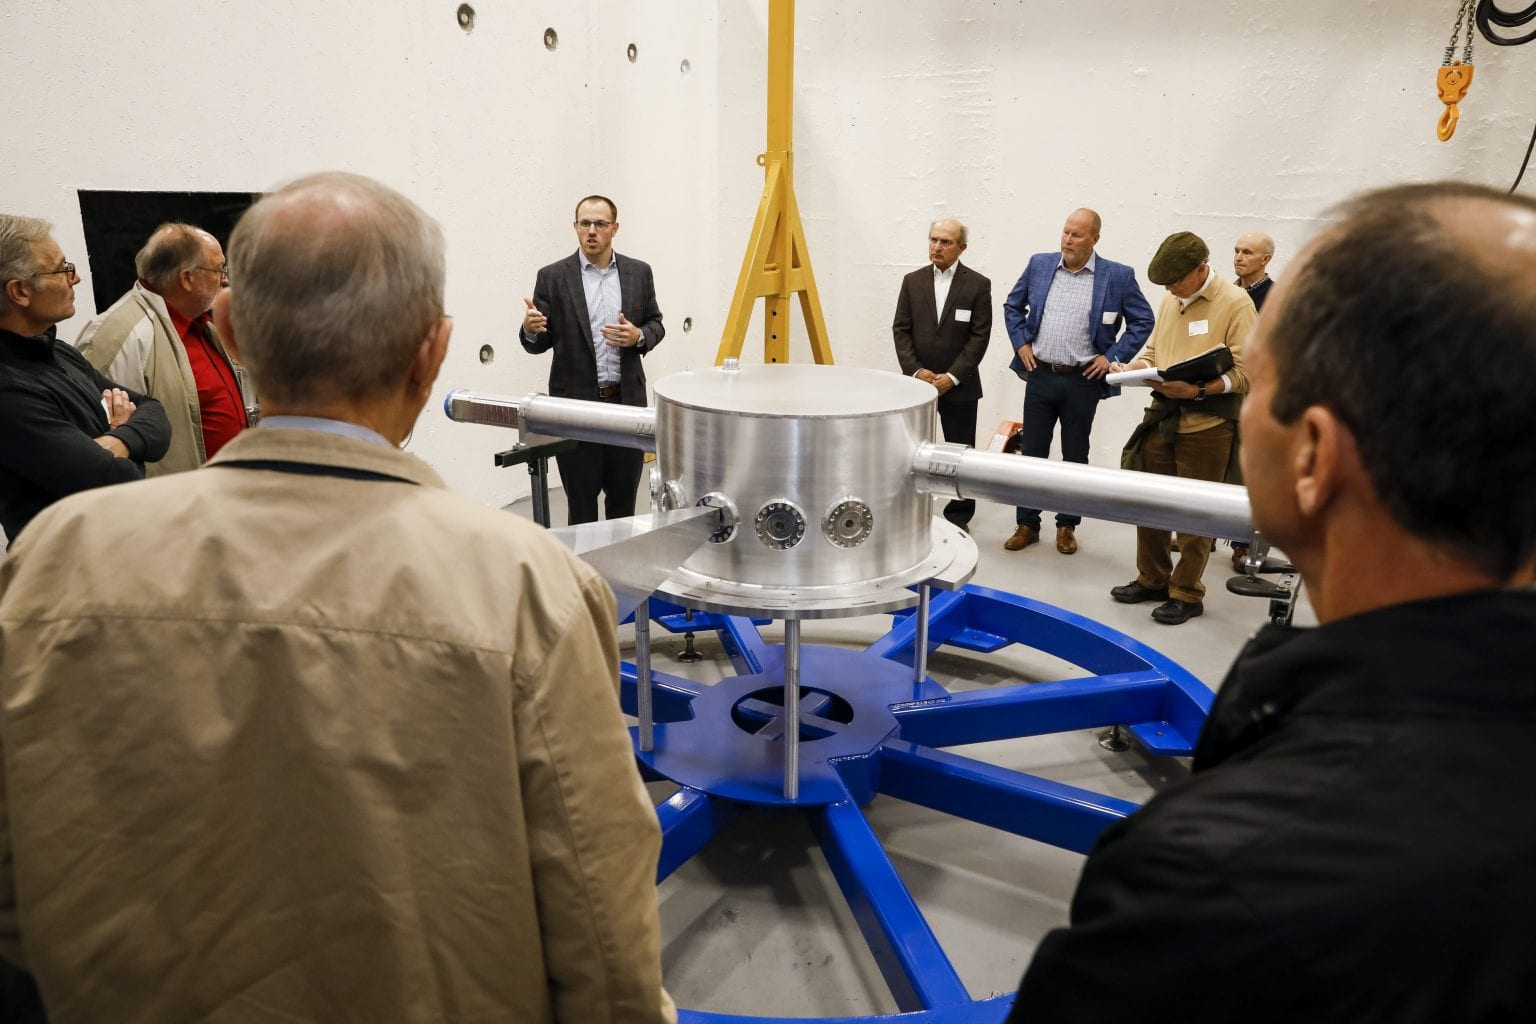 Evan Sengbusch takes VIPs on a tour of the bunker which will house our neutron imaging system